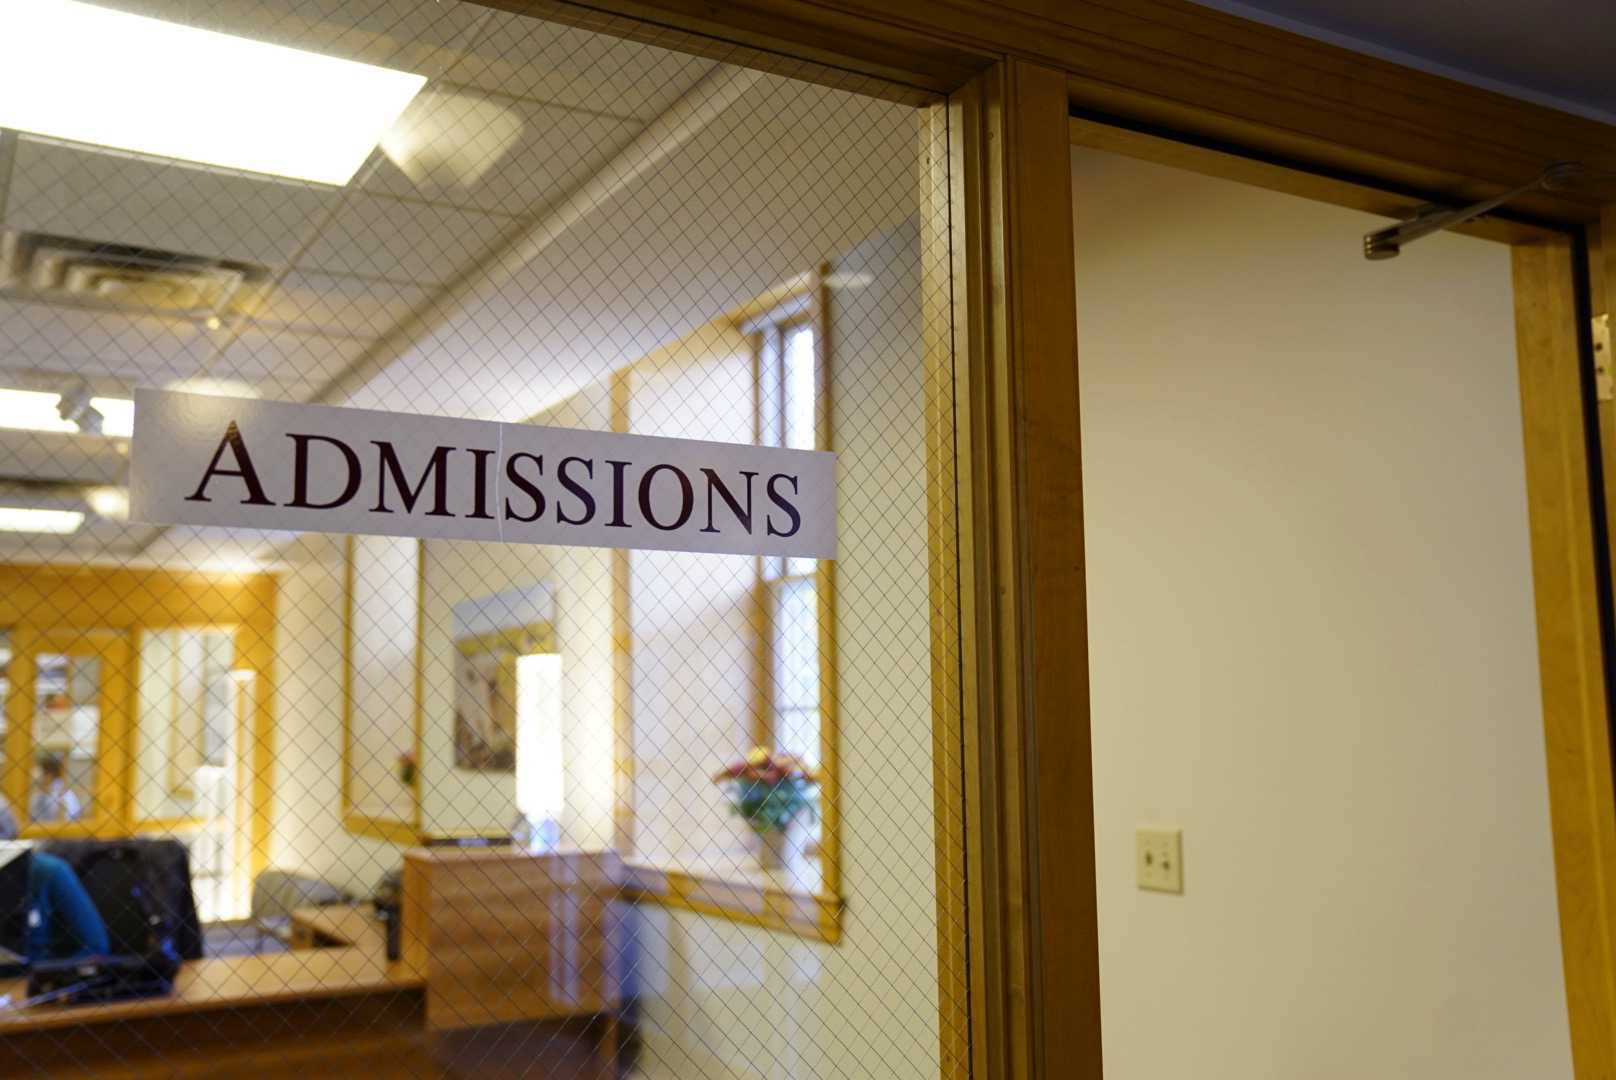 Allen, admissions still considering merits of potential test-optional policy